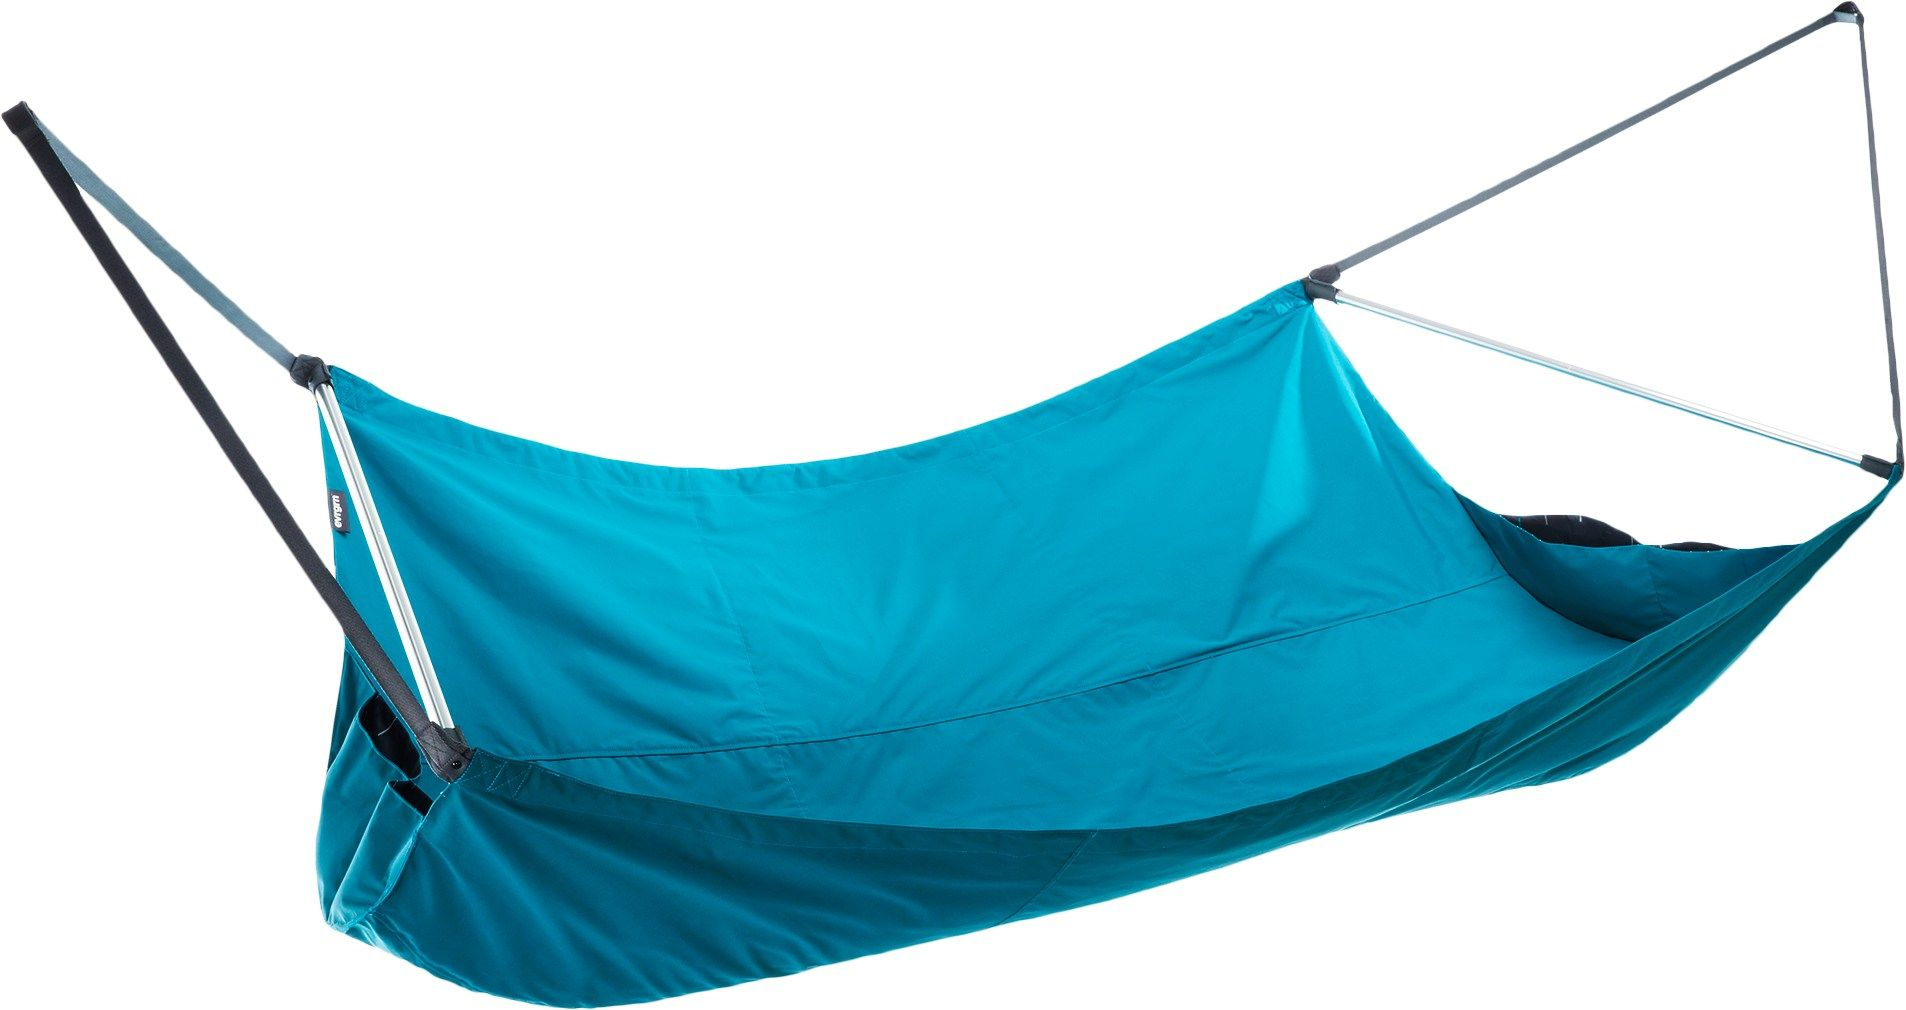 Medium image of camping    evrgrn downtime hammock   rei